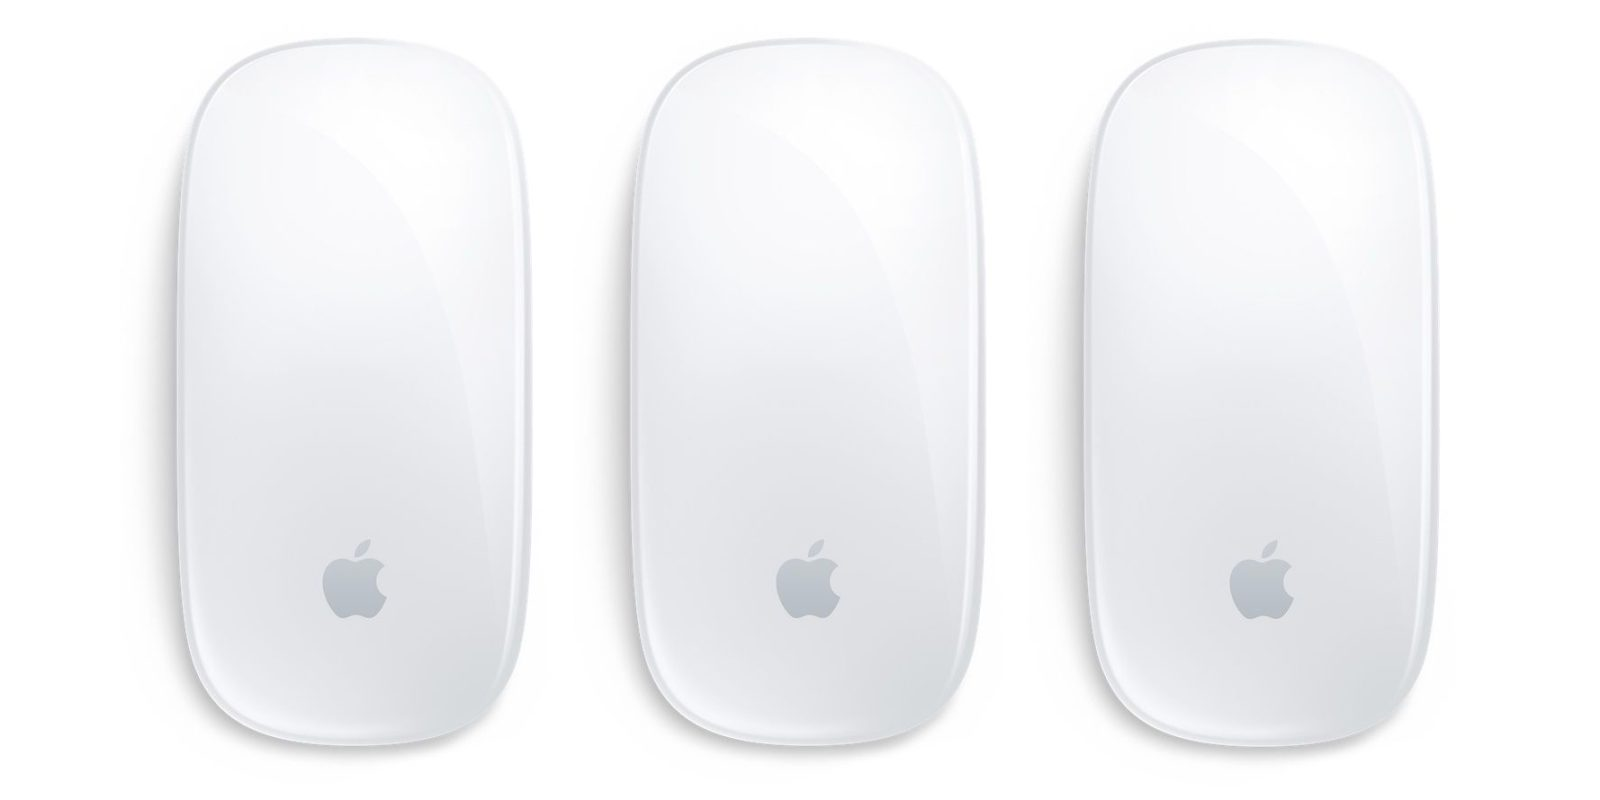 Apple's Magic Mouse 2 returns to $40 at Target (Reg. $79)